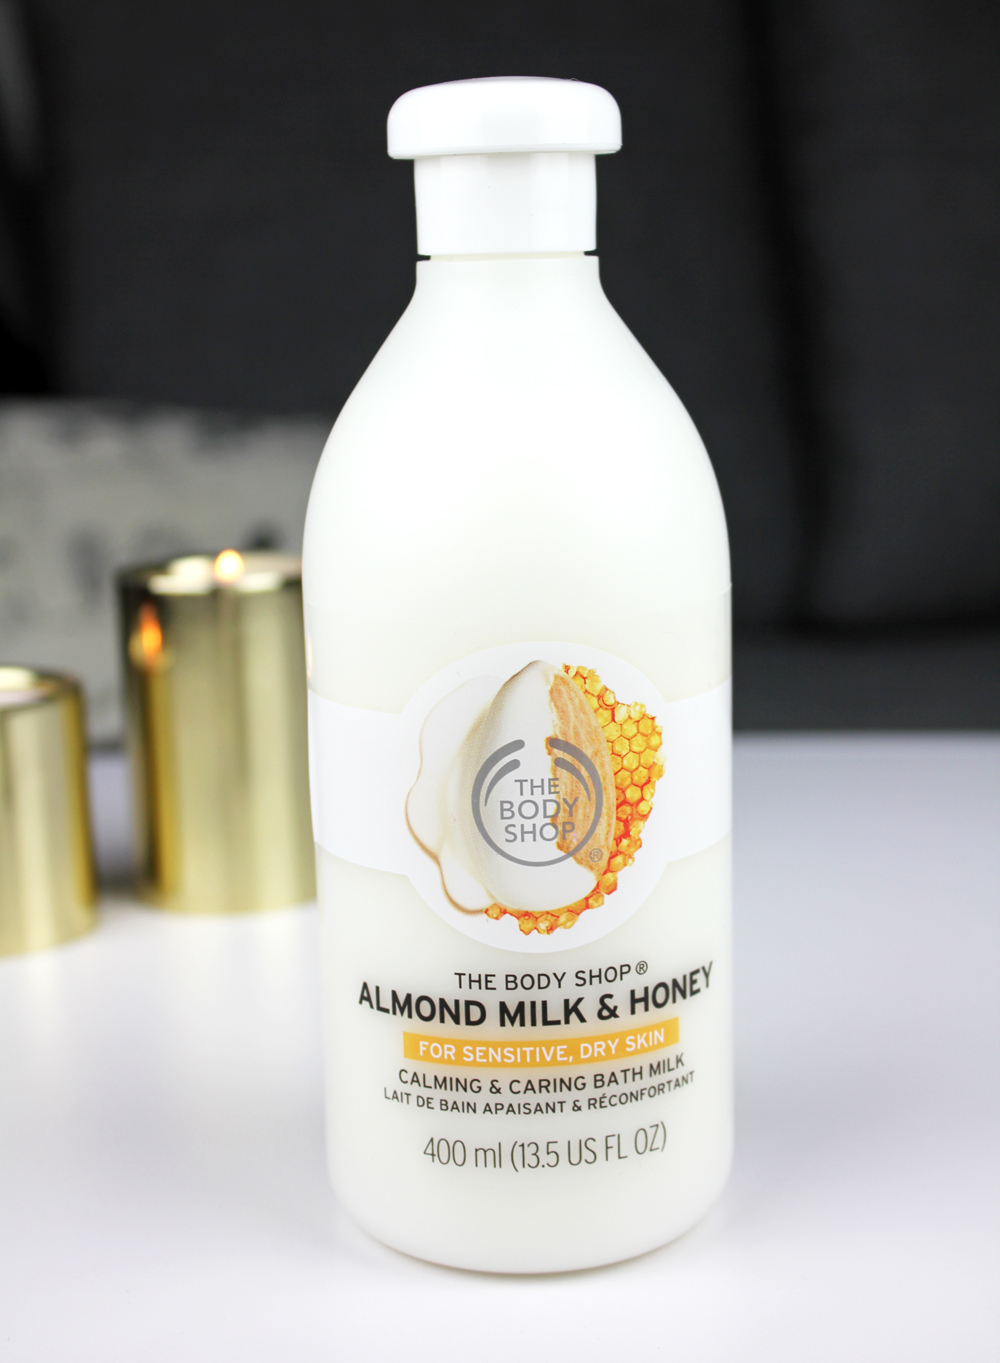 The Body Shop Almond Milk & Honey Soothing & Caring Bath Milk